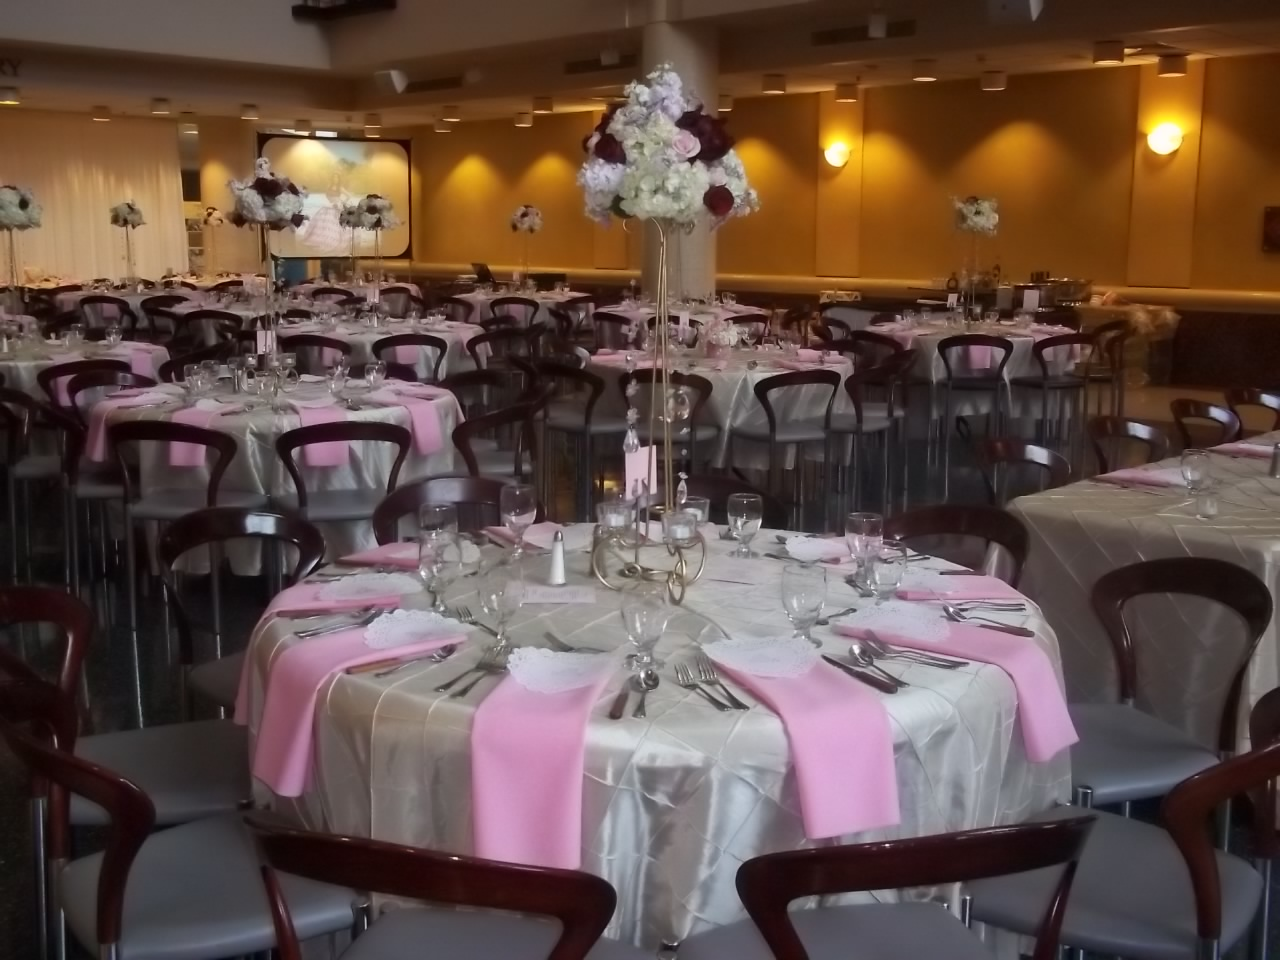 Pink Table Settings at Quinceañera put on by Hannibal's Catering